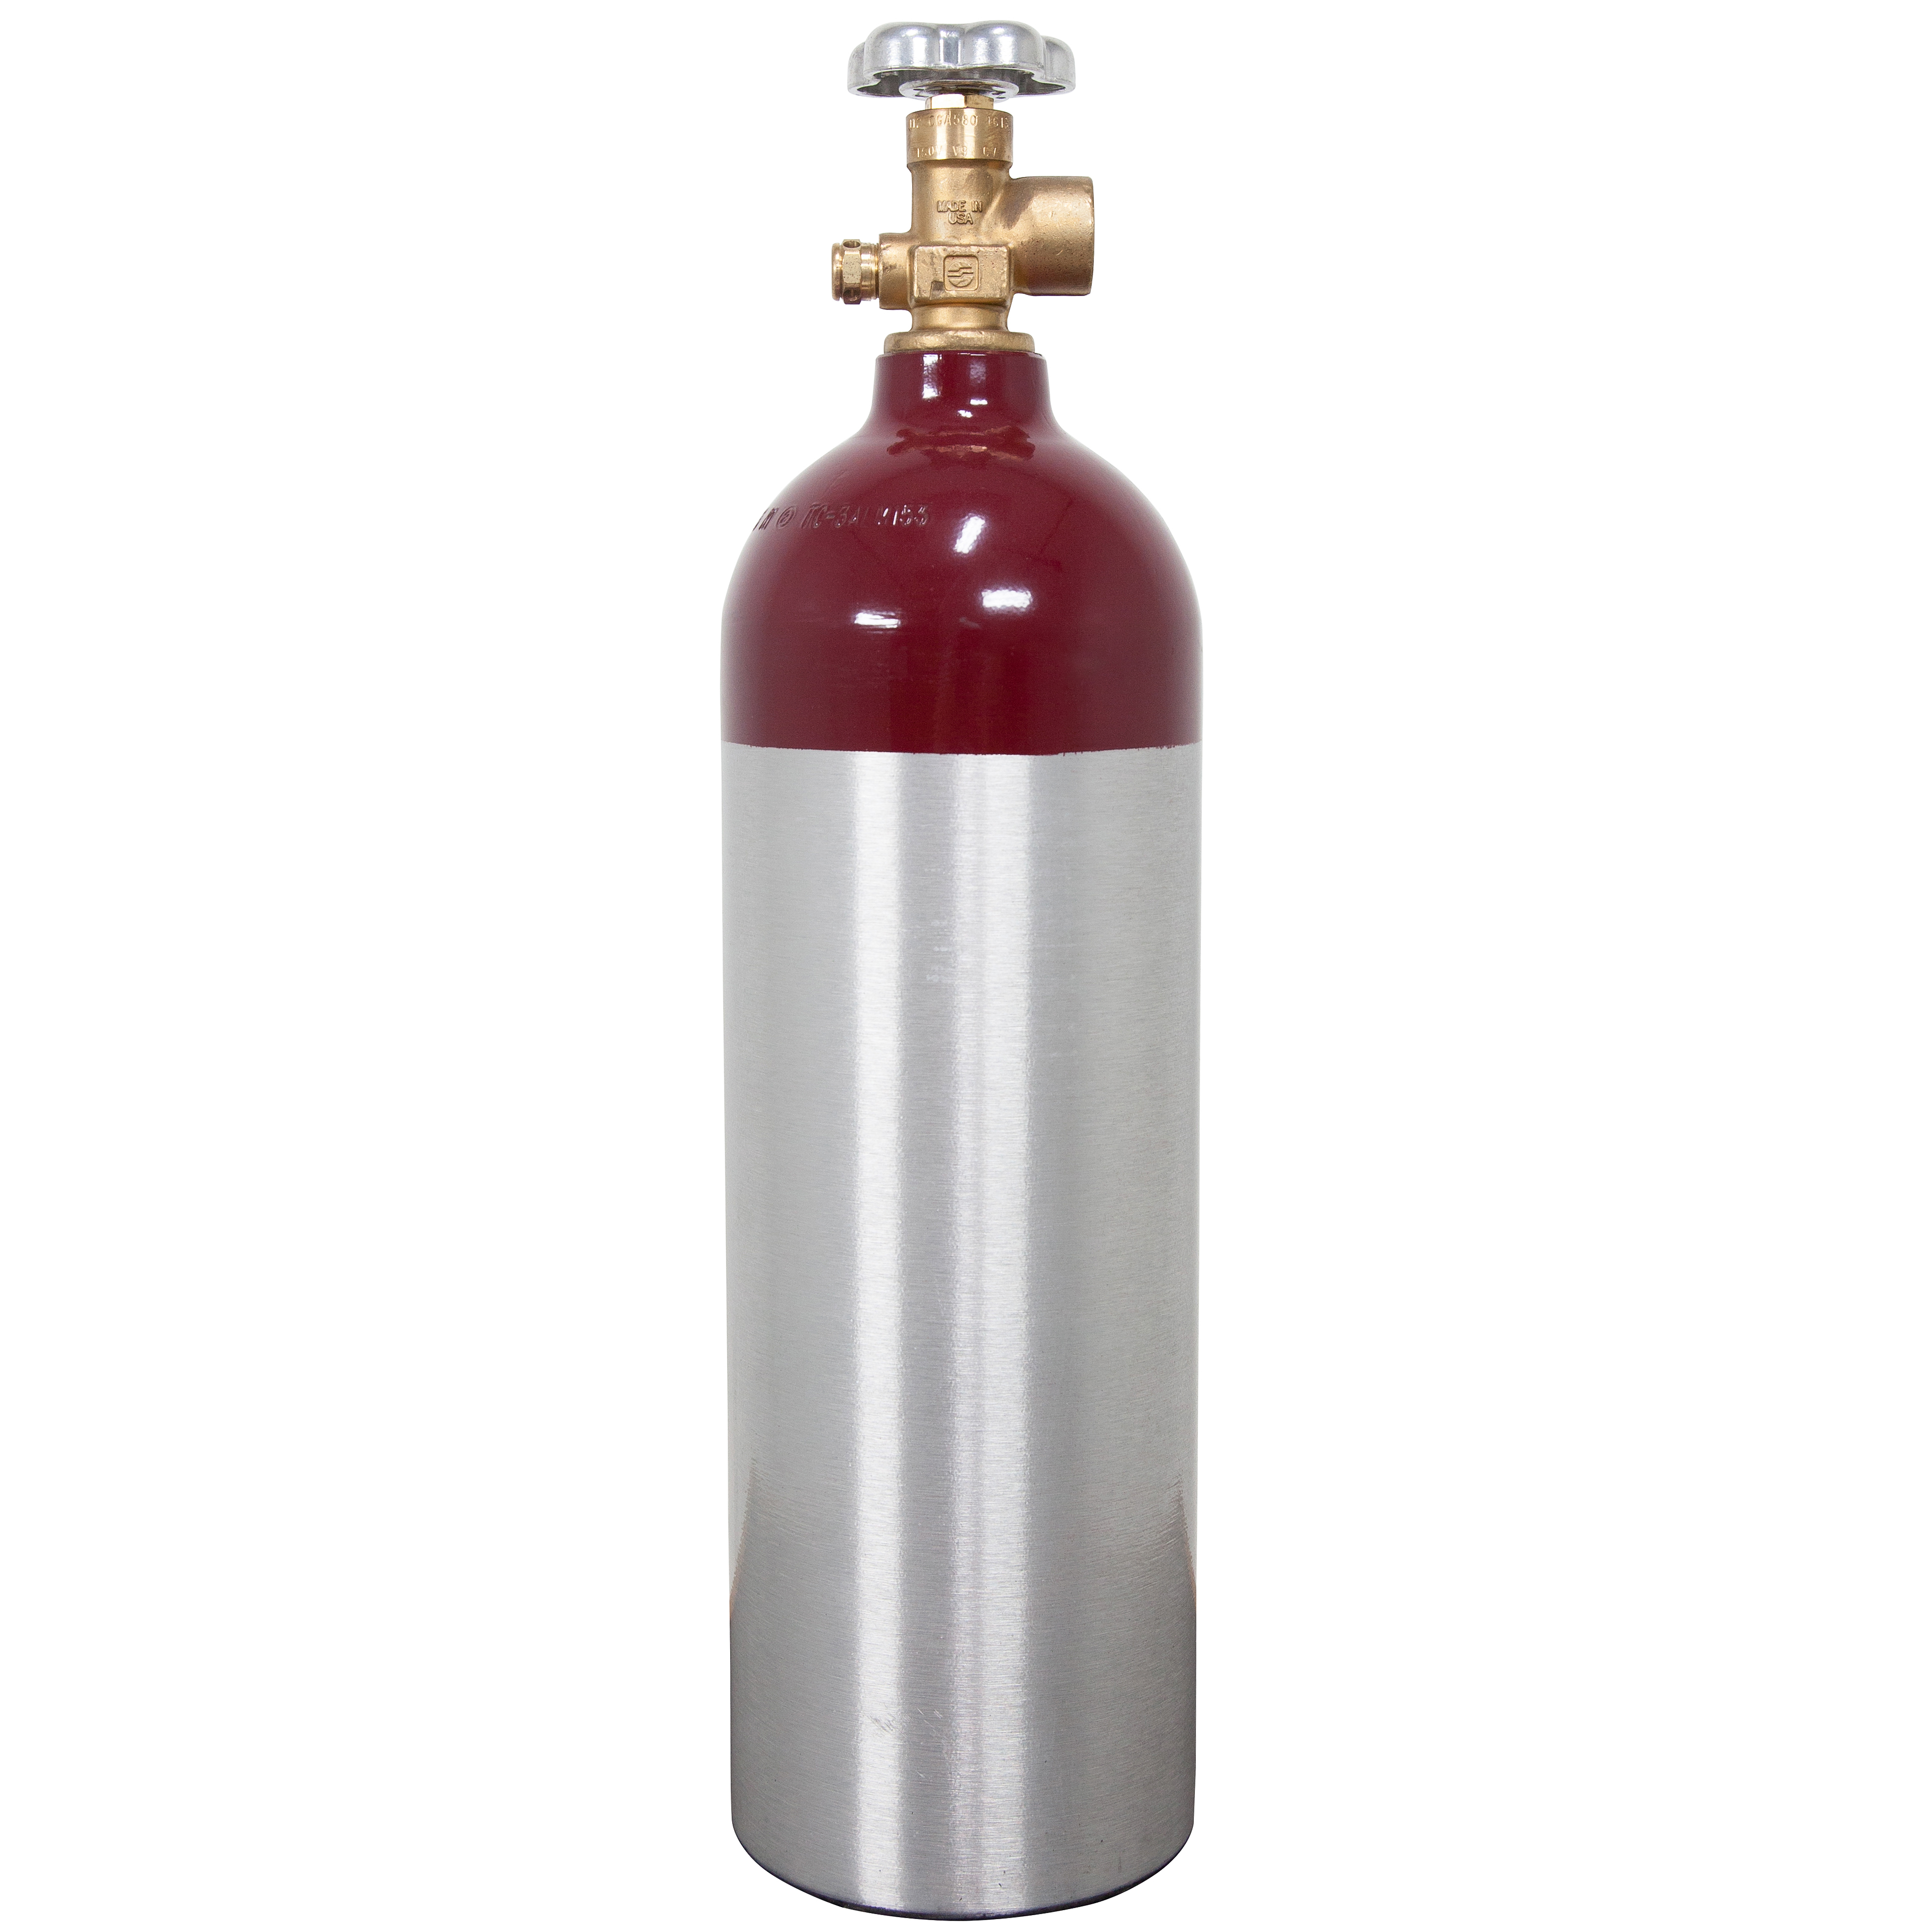 Luxfer Nitrogen Tank for Kegerators and Beverage Dispenser - Aluminum